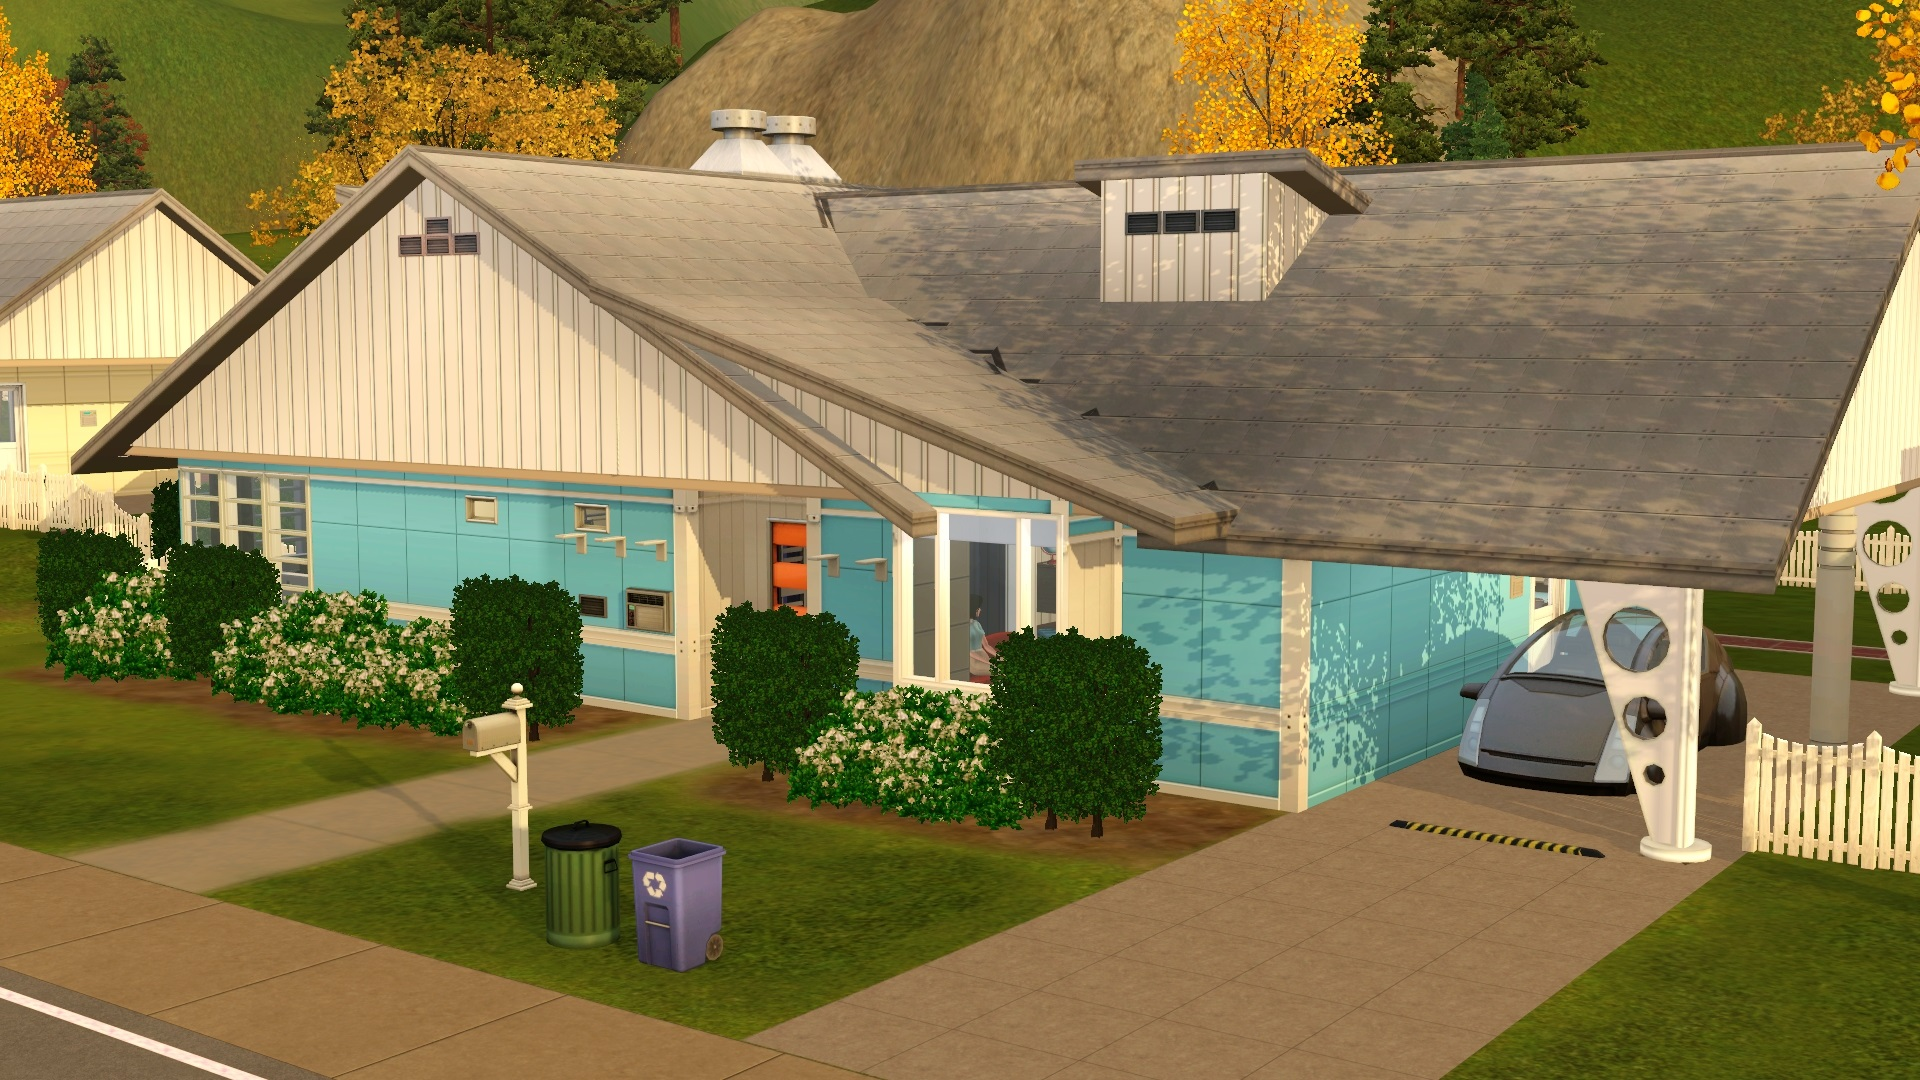 Mod The Sims - The House of Tomorrow - Fallout 4